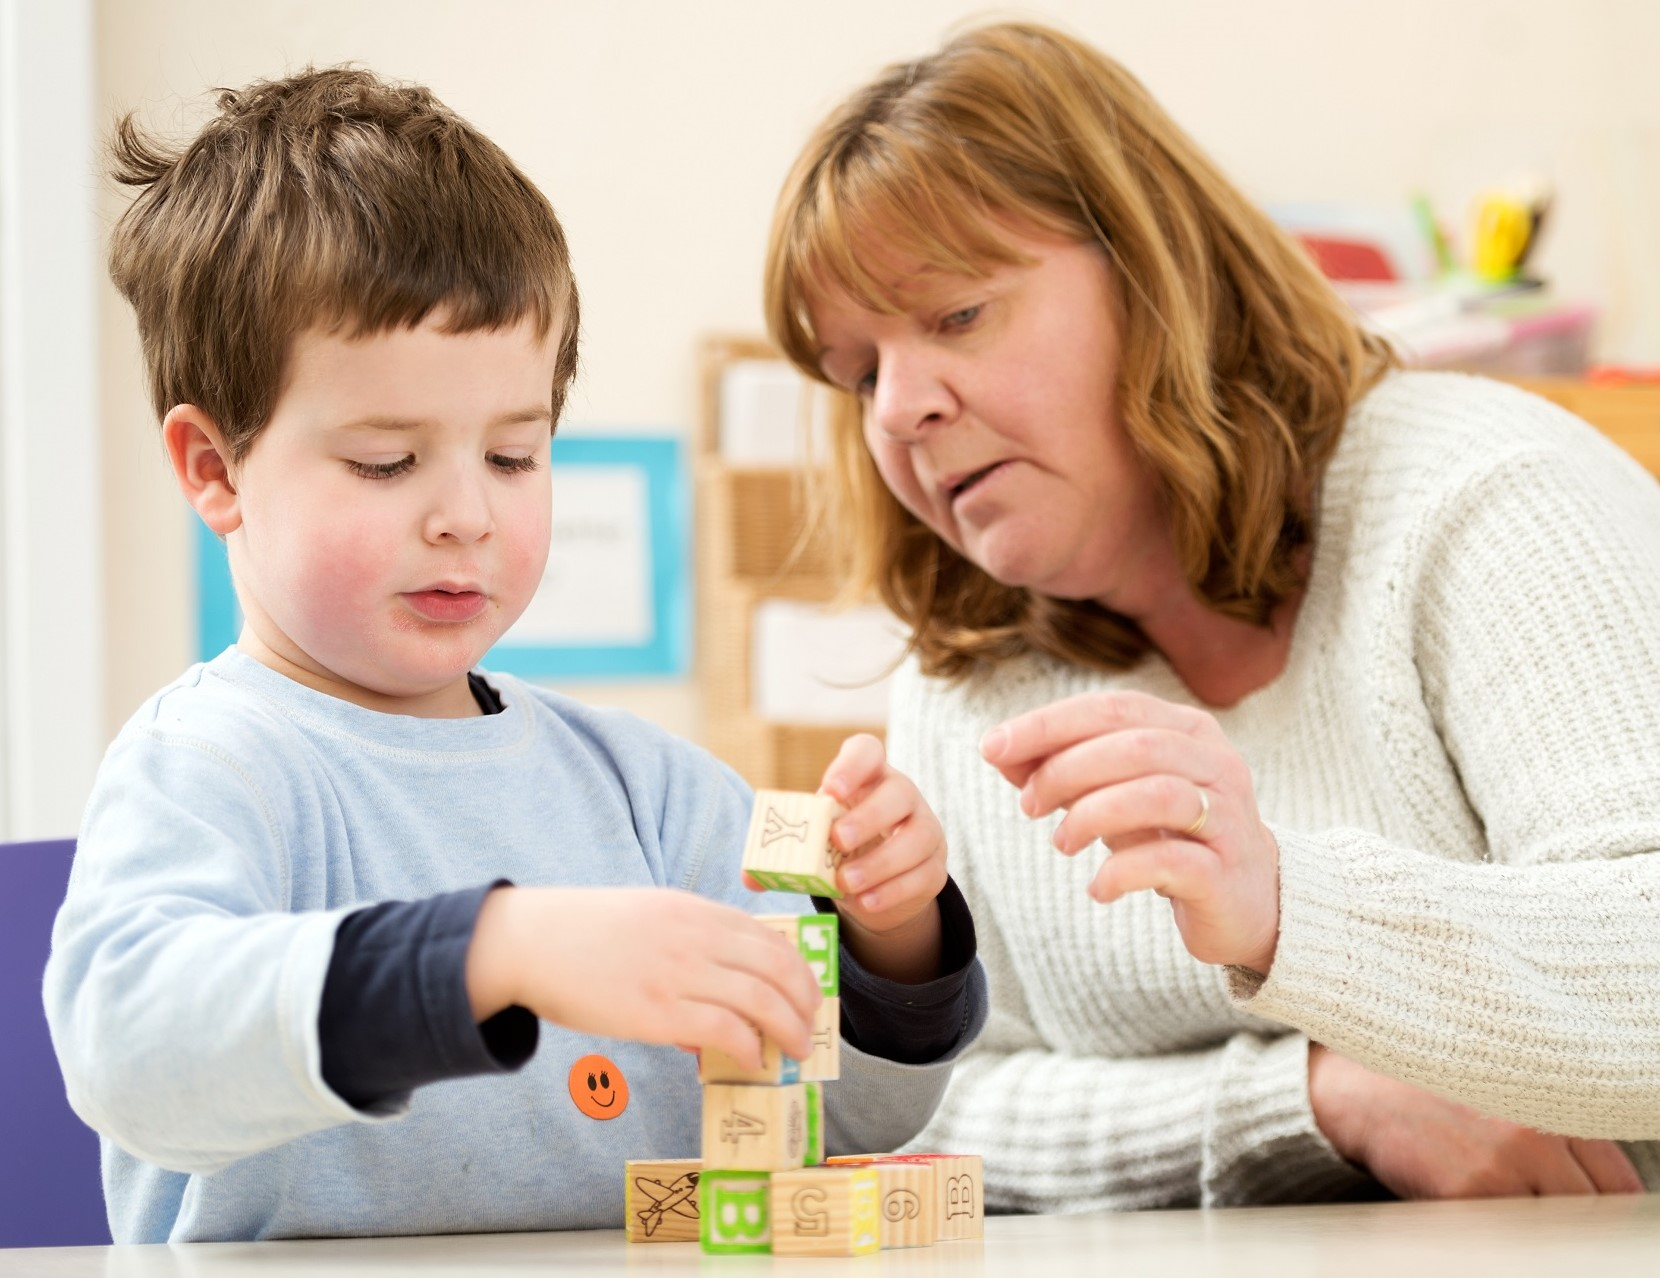 Dreghorn Pre-school and Creche pupil with teacher and building blocks